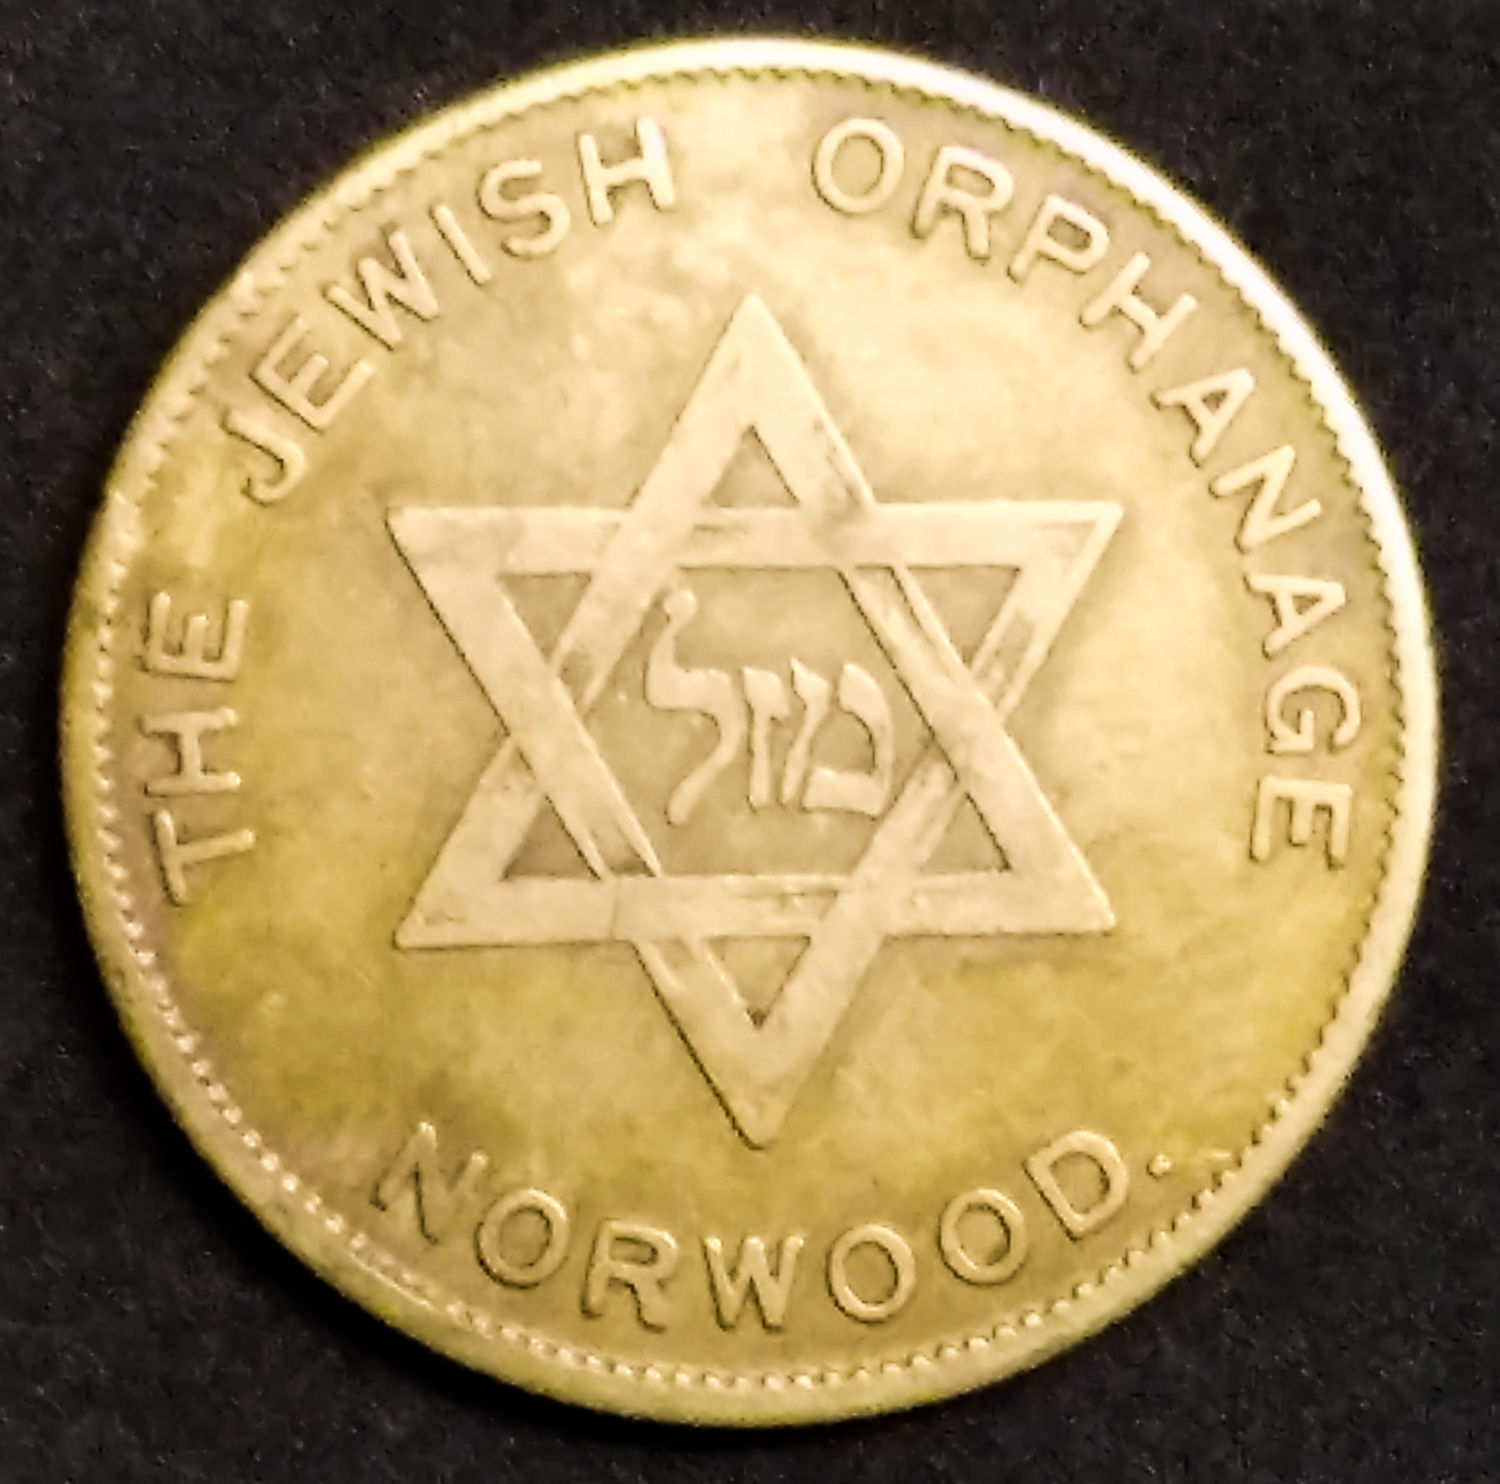 Lot 13 - Medals, Tokens.  -  yigal avrahamy Auction 03 - Coins and Banknotes of Israel and Palestine, medals and tokens.